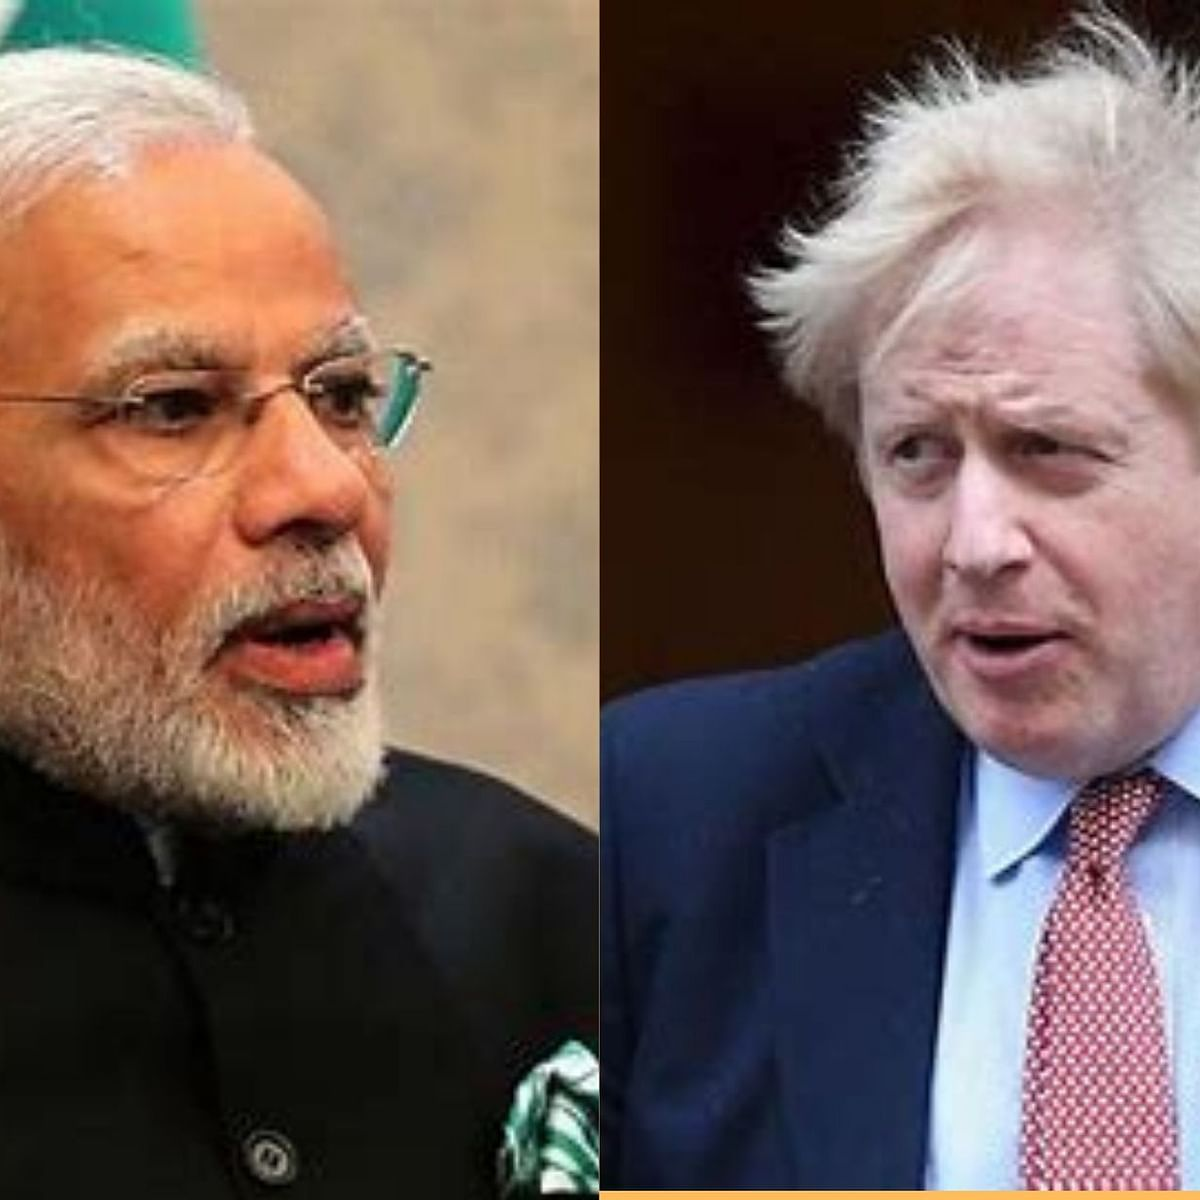 Post-Brexit UK and post-Ladakh and lockdown India need each other